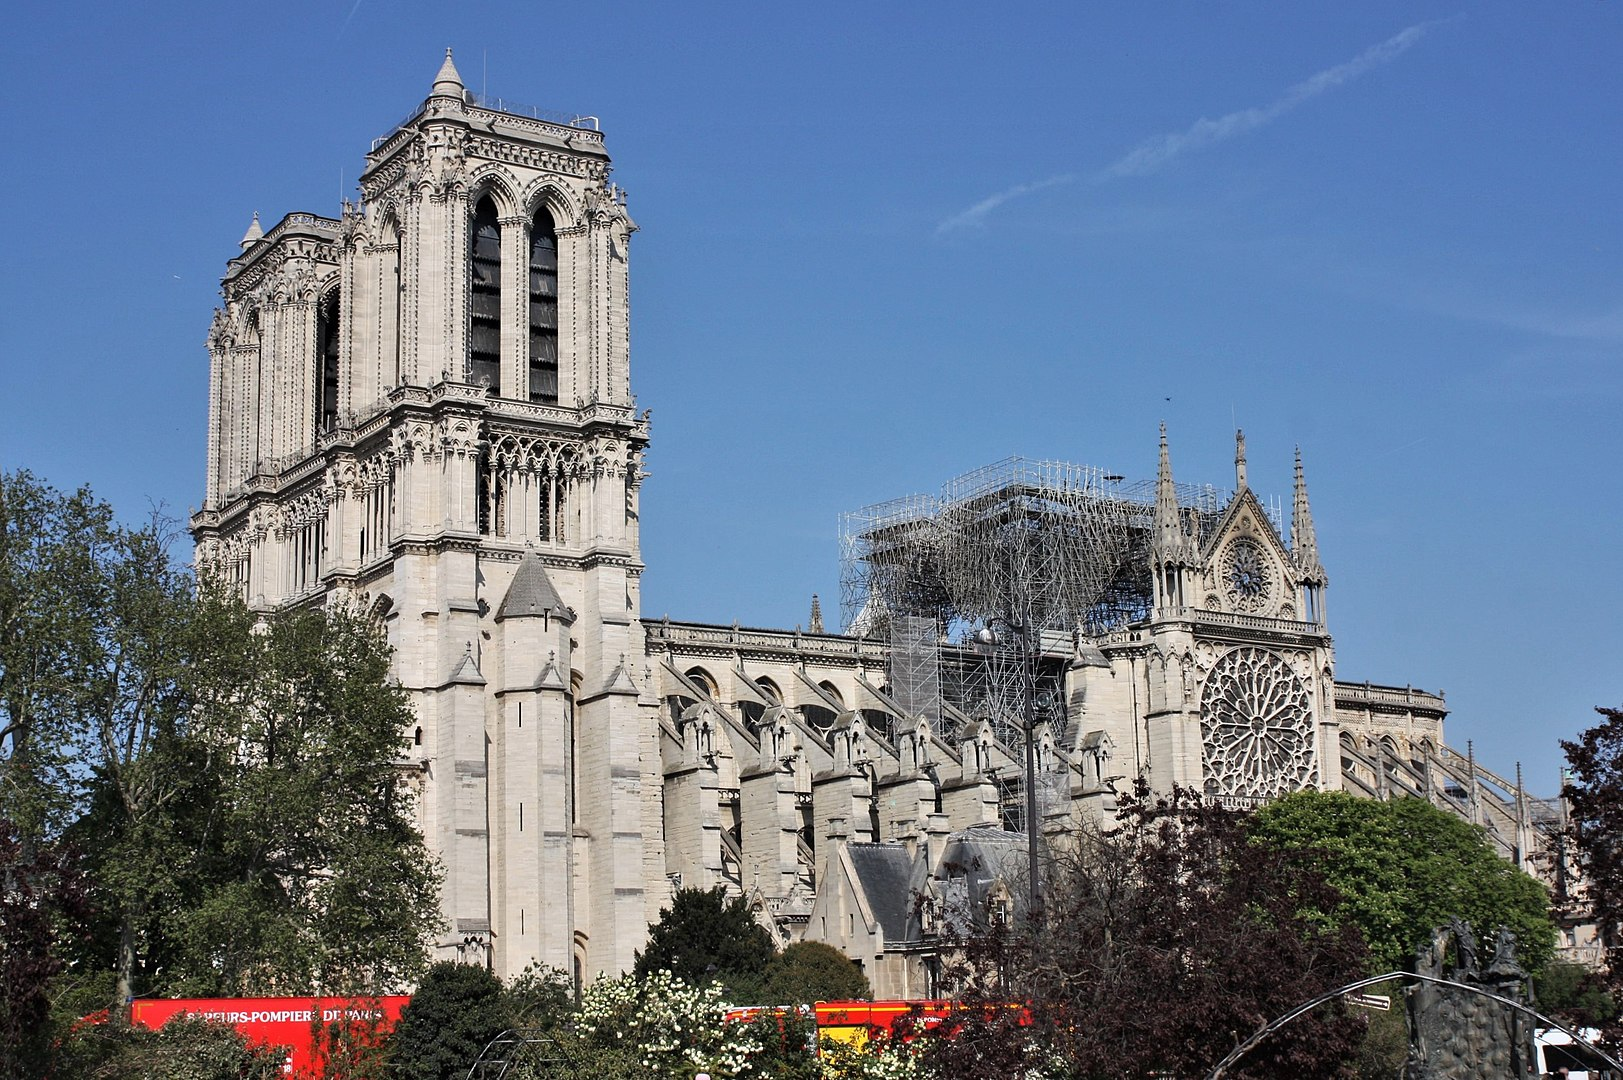 Notre-Dame de Paris on 19 April 2019 © Arthur Weidmann - licence [CC BY-SA 2.0] from Wikimedia Commons